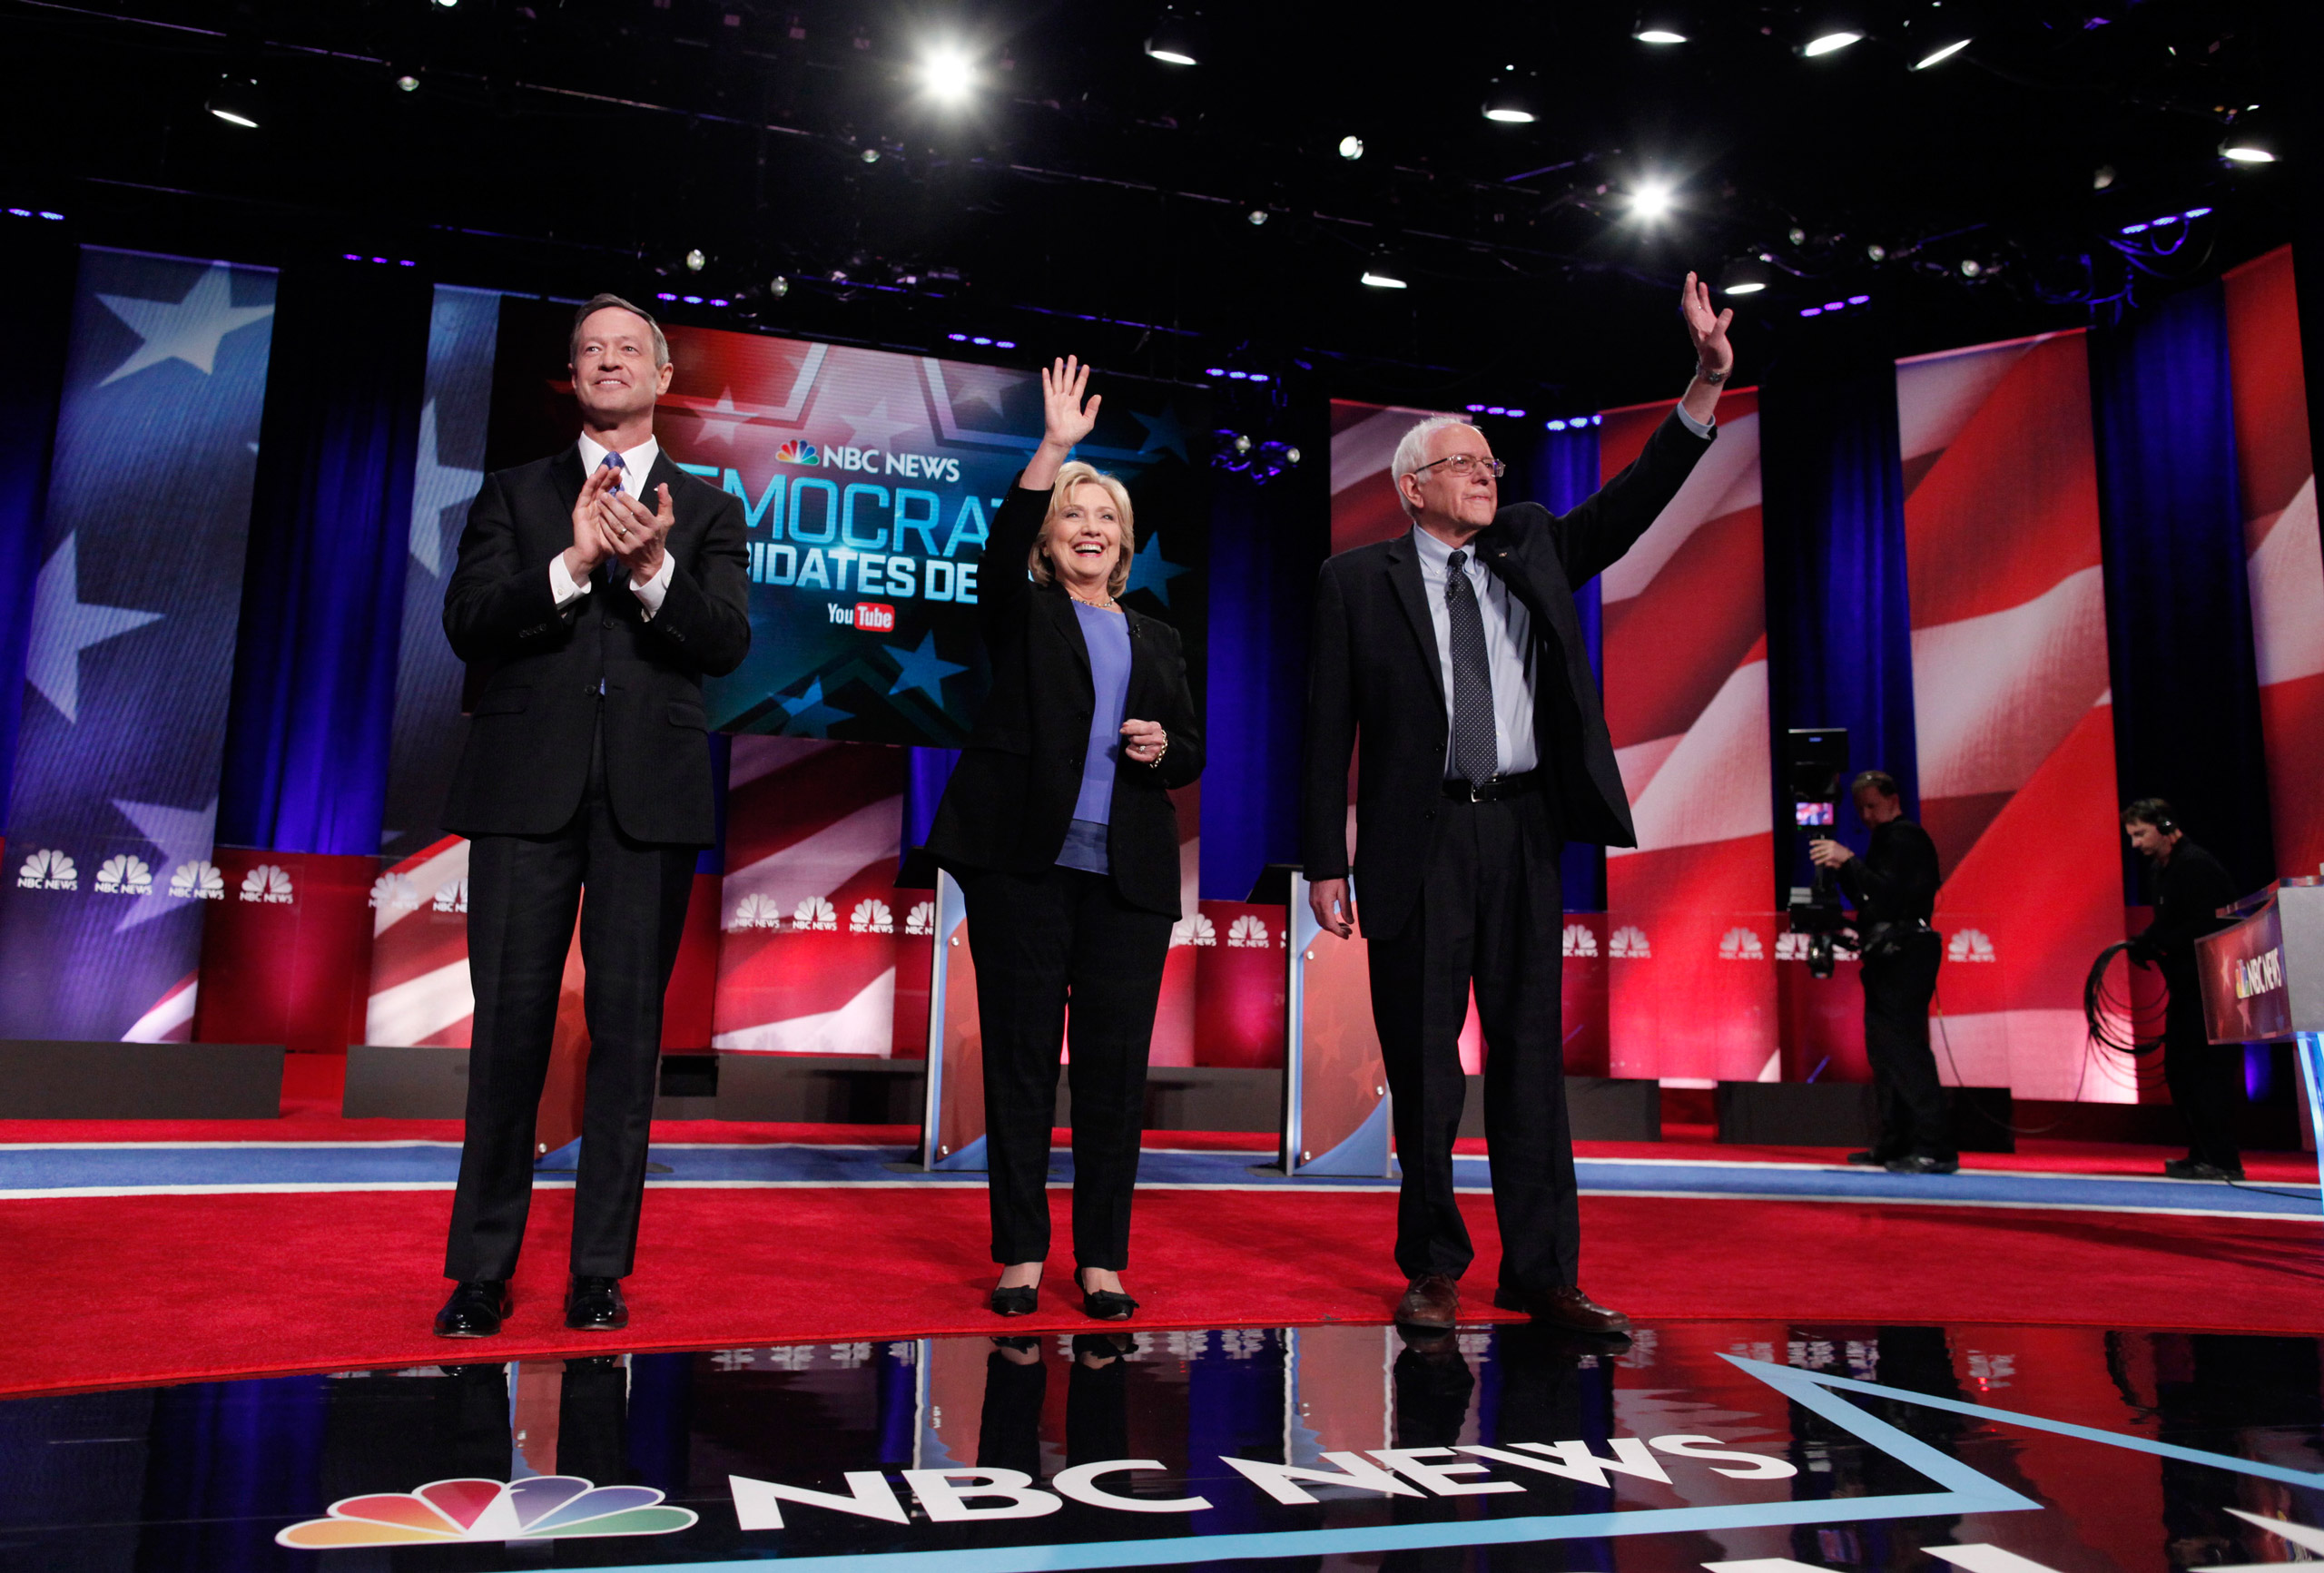 Democratic U.S. presidential candidates (L-R) former Governor Martin O'Malley, former Secretary of State Hillary Clinton and Senator Bernie Sanders pose together before the start of the NBC - YouTube Democratic presidential debate at the Gaillard Center in Charleston, S.C. on Jan. 17, 2016.